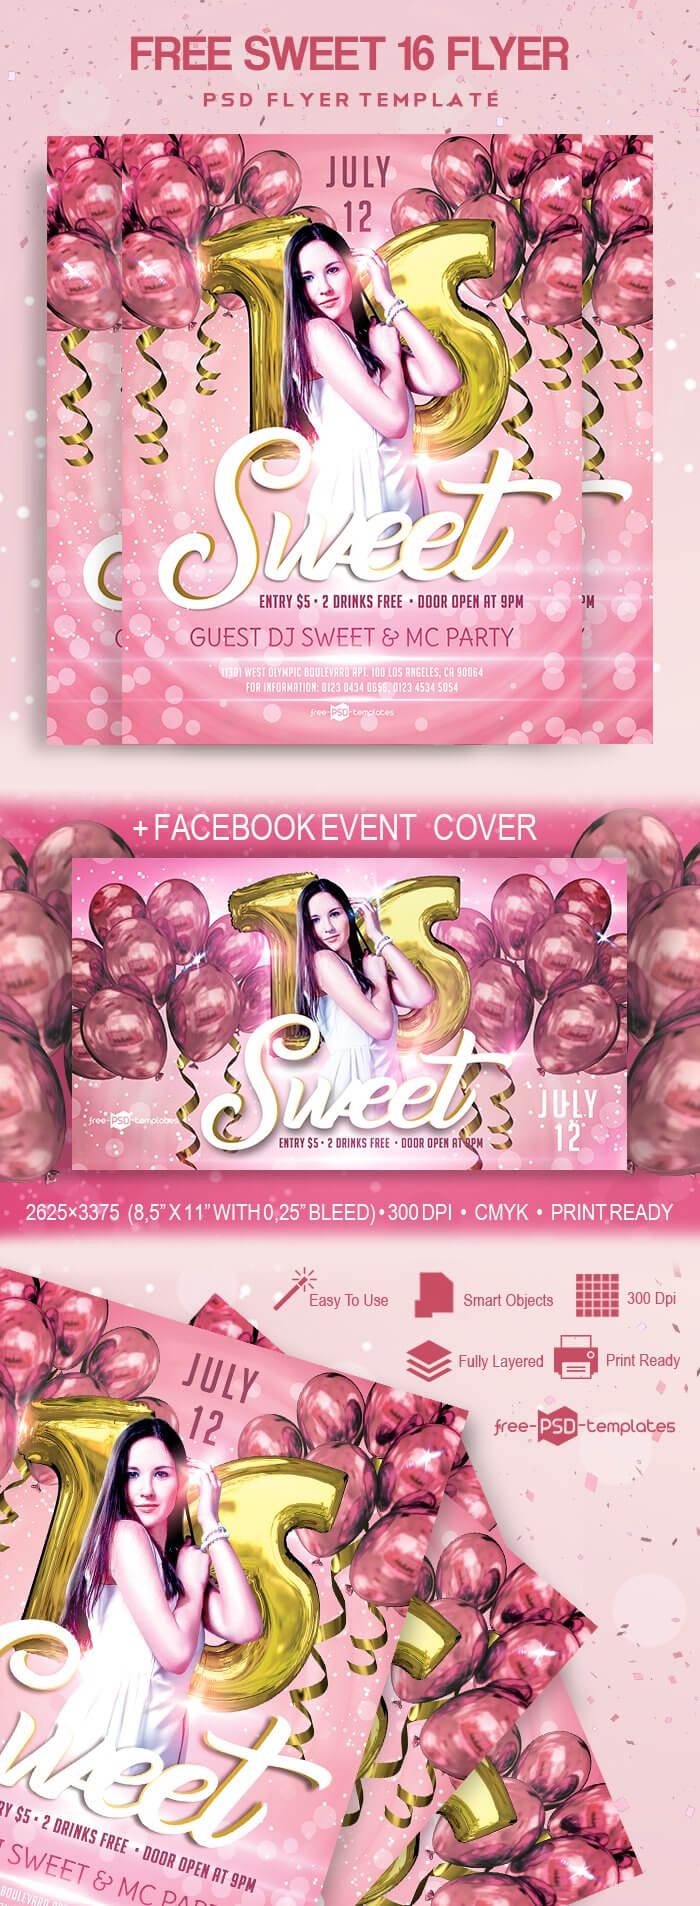 Free Sweet 16 Flyer In Psd | Free Psd Templates With Regard To Sweet 16 Banner Template